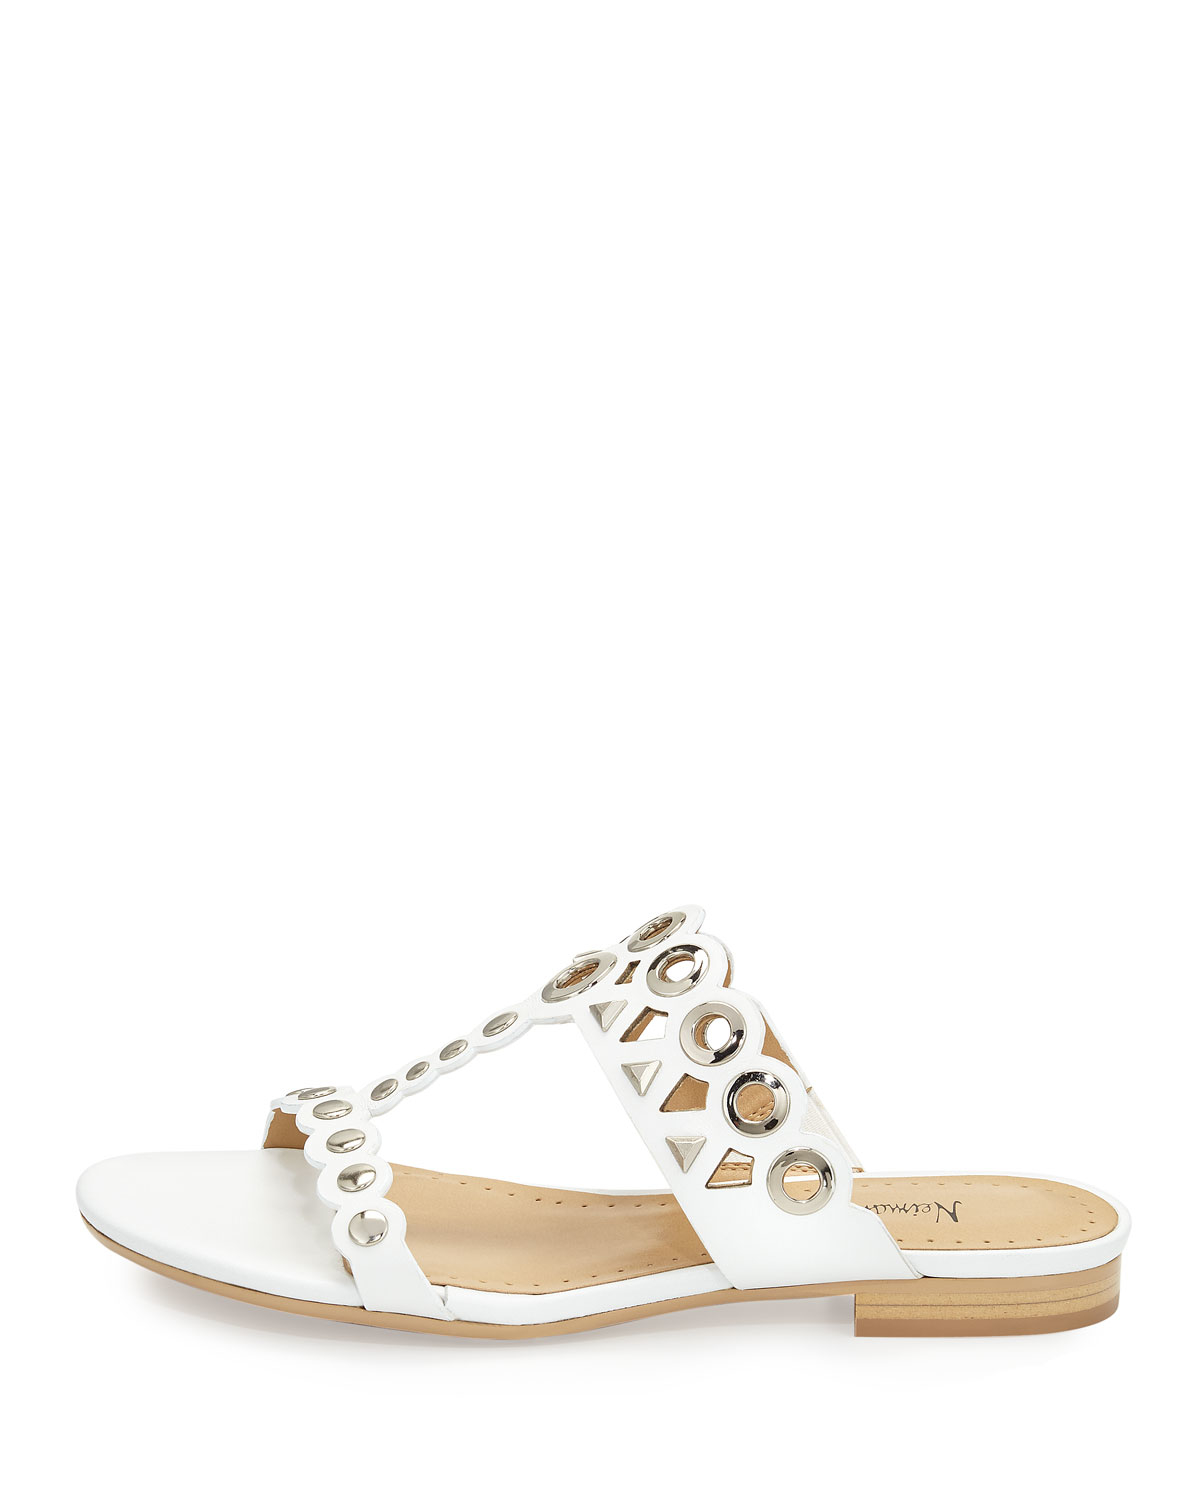 Lyst - Neiman Marcus Emmery Studded Leather T-strap Sandal ...